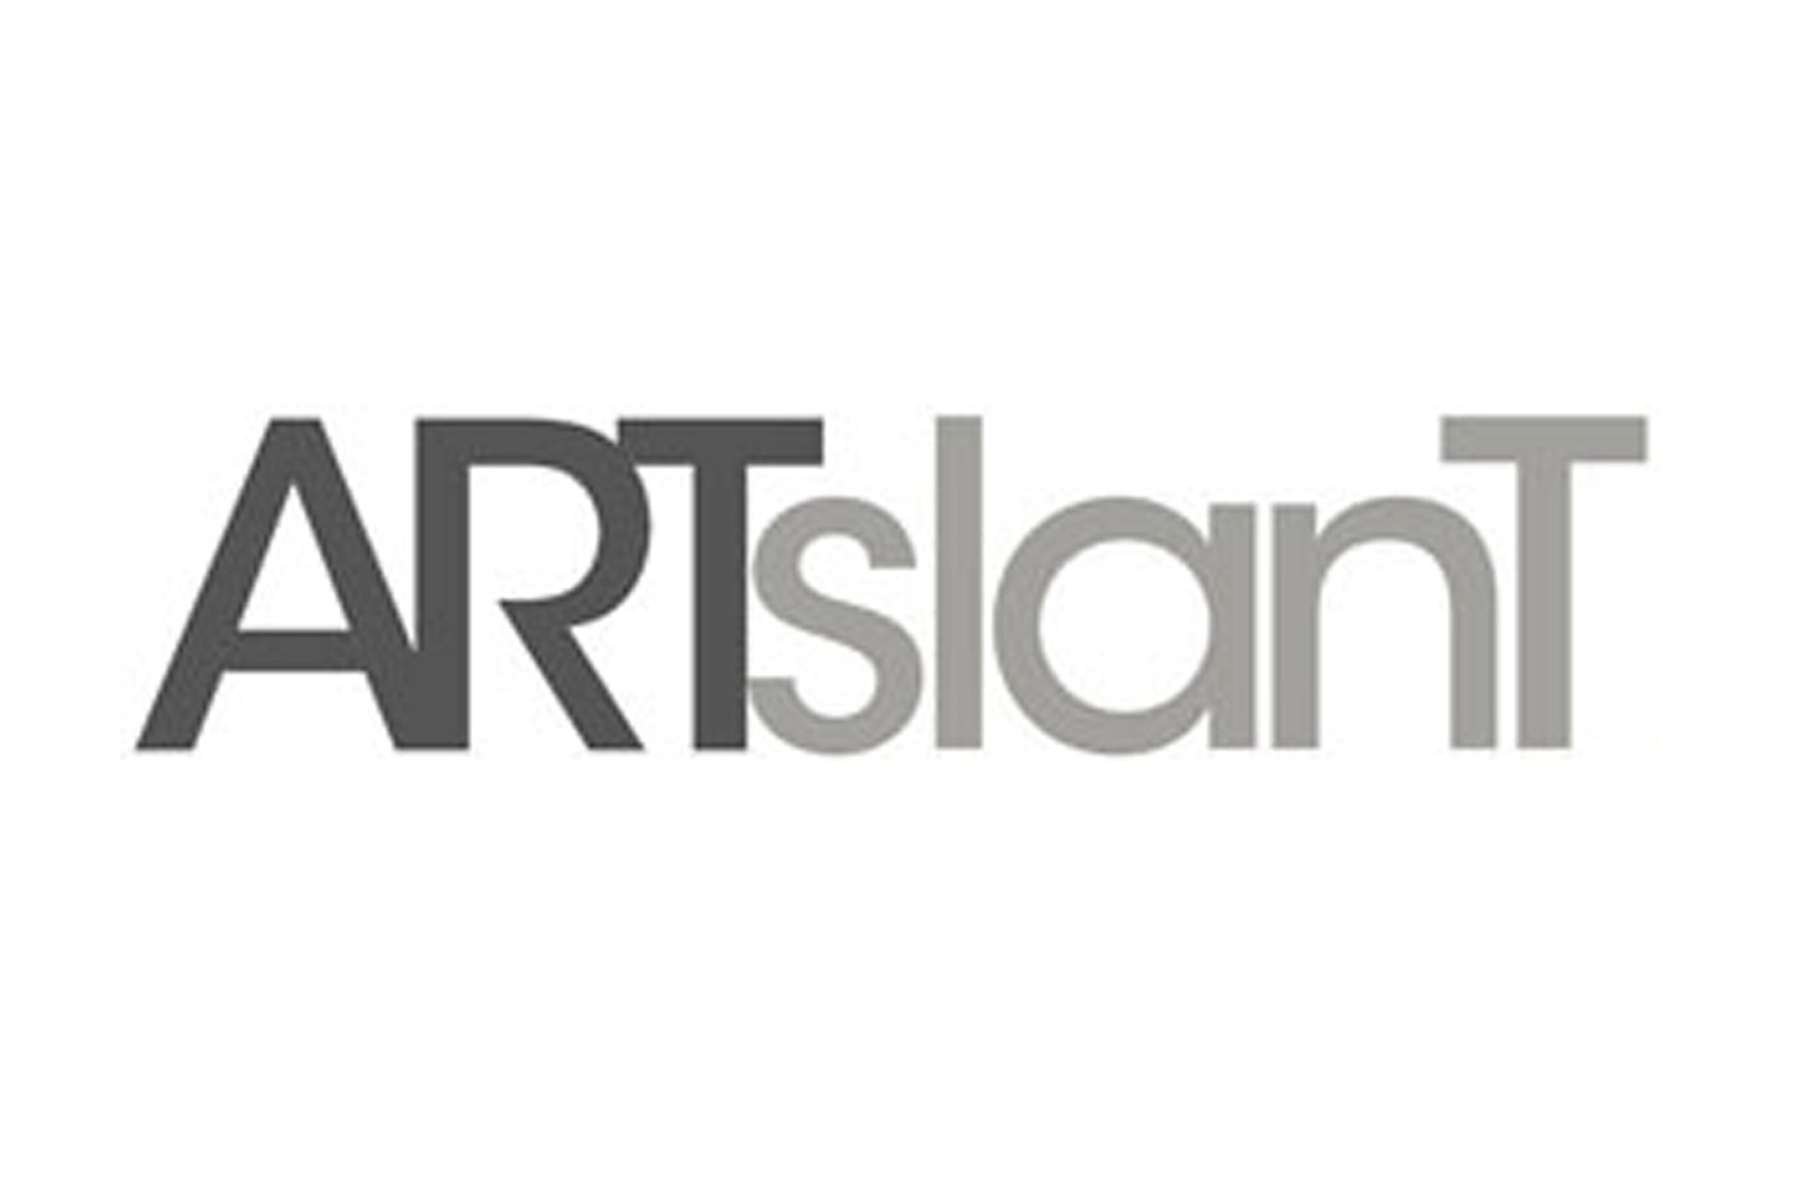 Artslant – Portraying the Power of the Persona – 2013